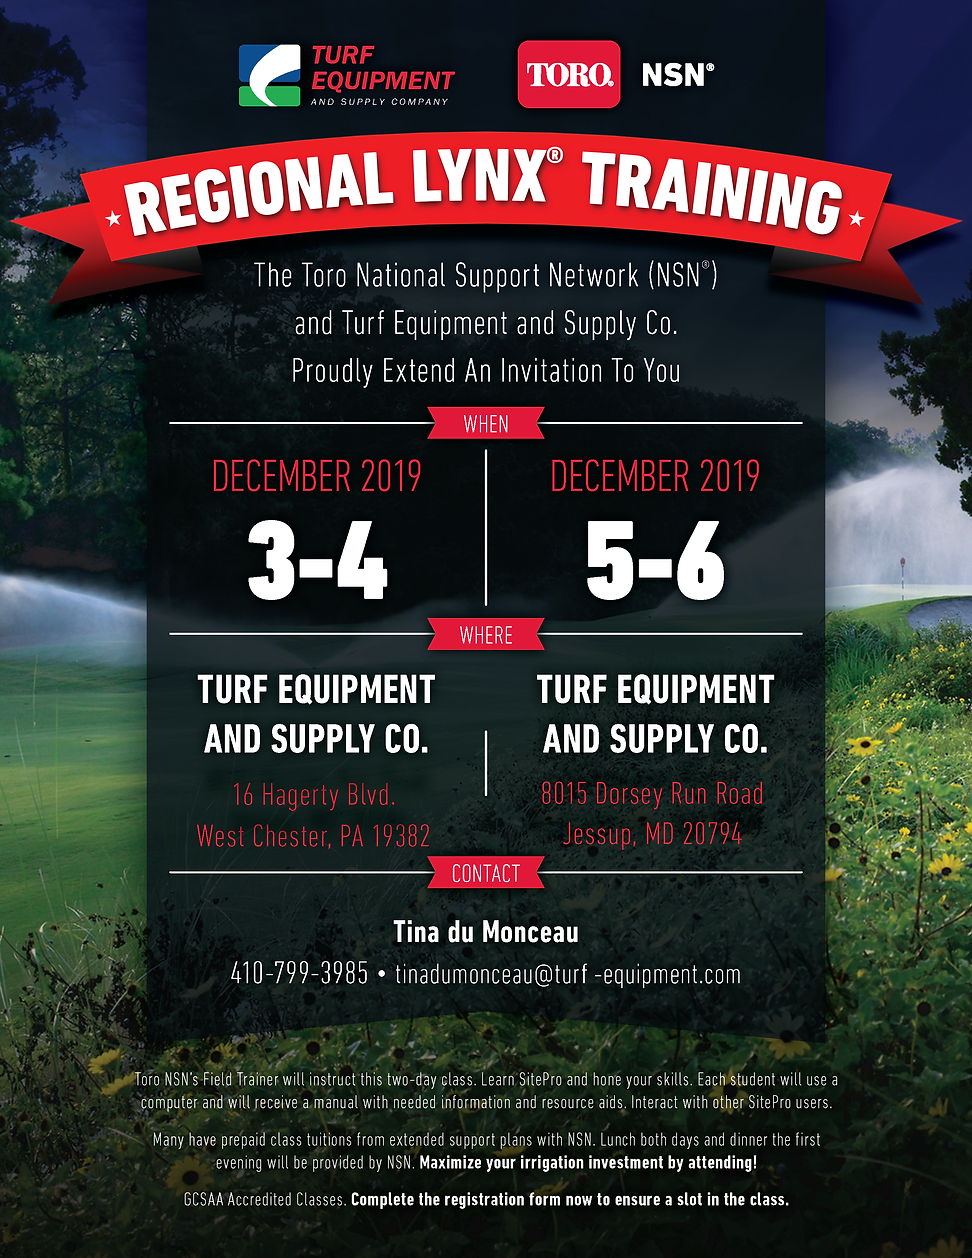 Turf Equipment Regional Lynx Training In